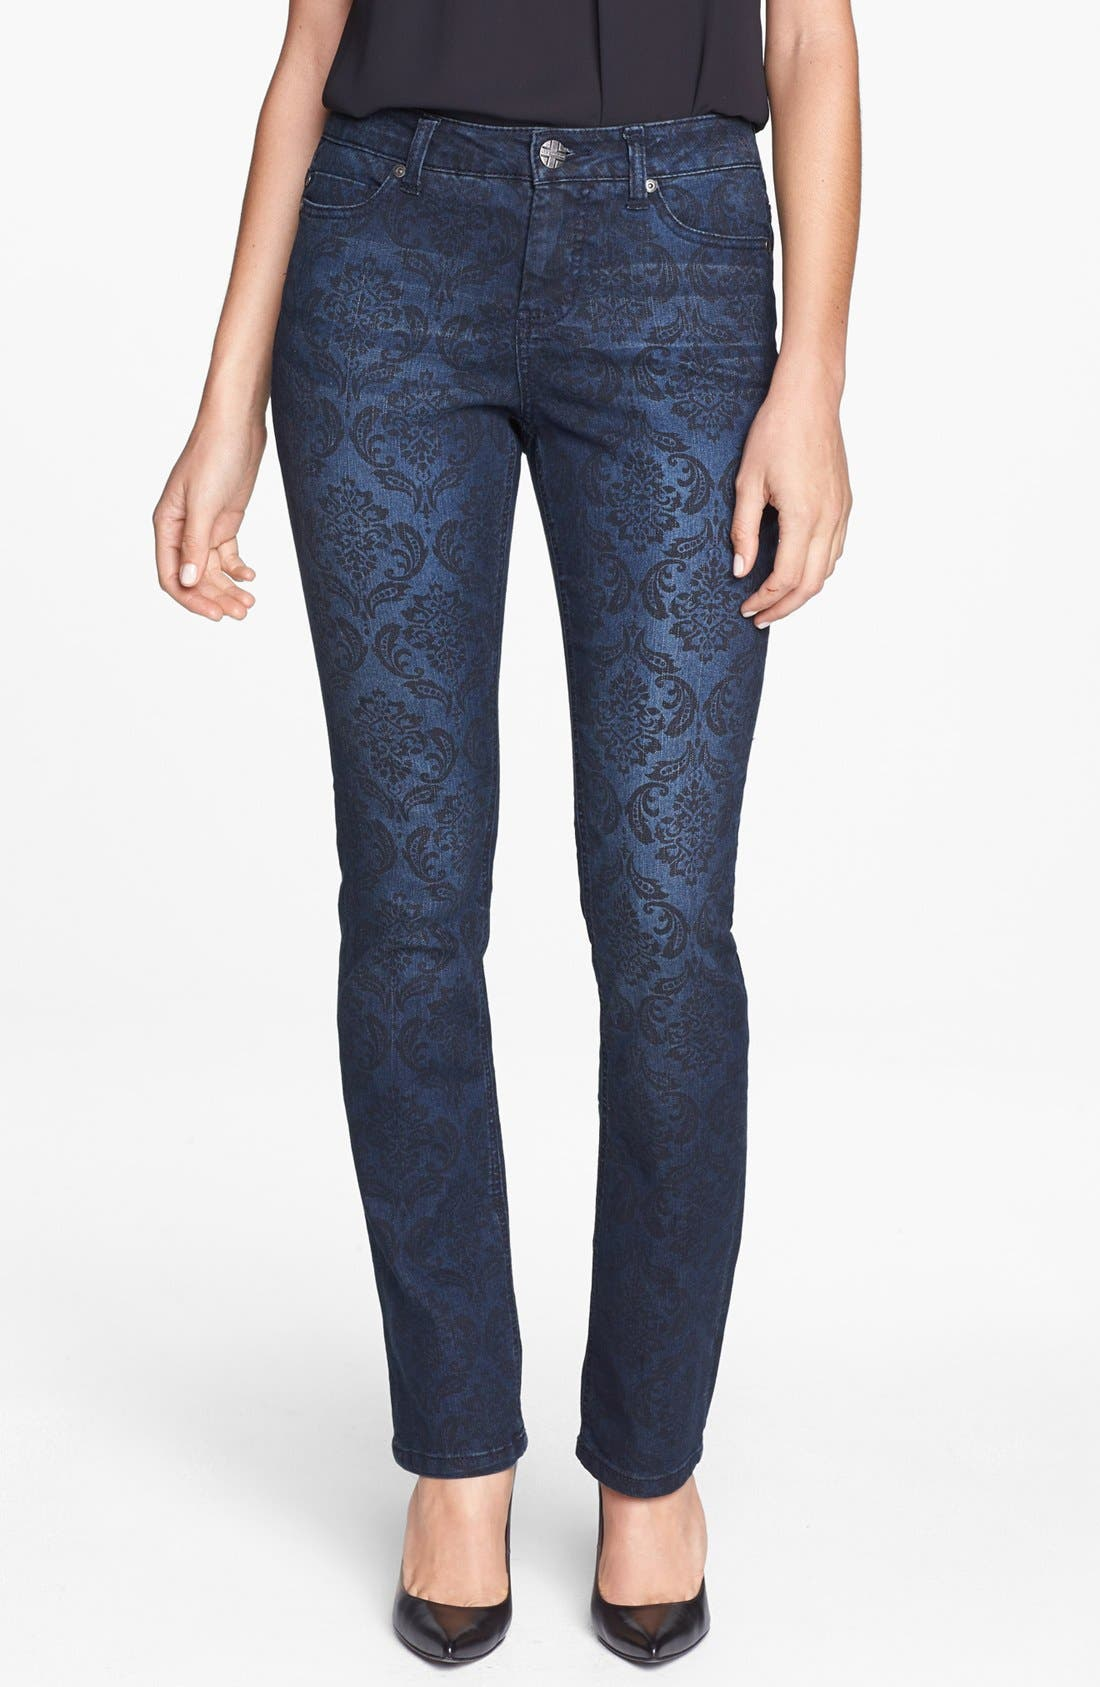 Main Image - Liverpool Jeans Company 'Sadie' Print Straight Leg Jeans